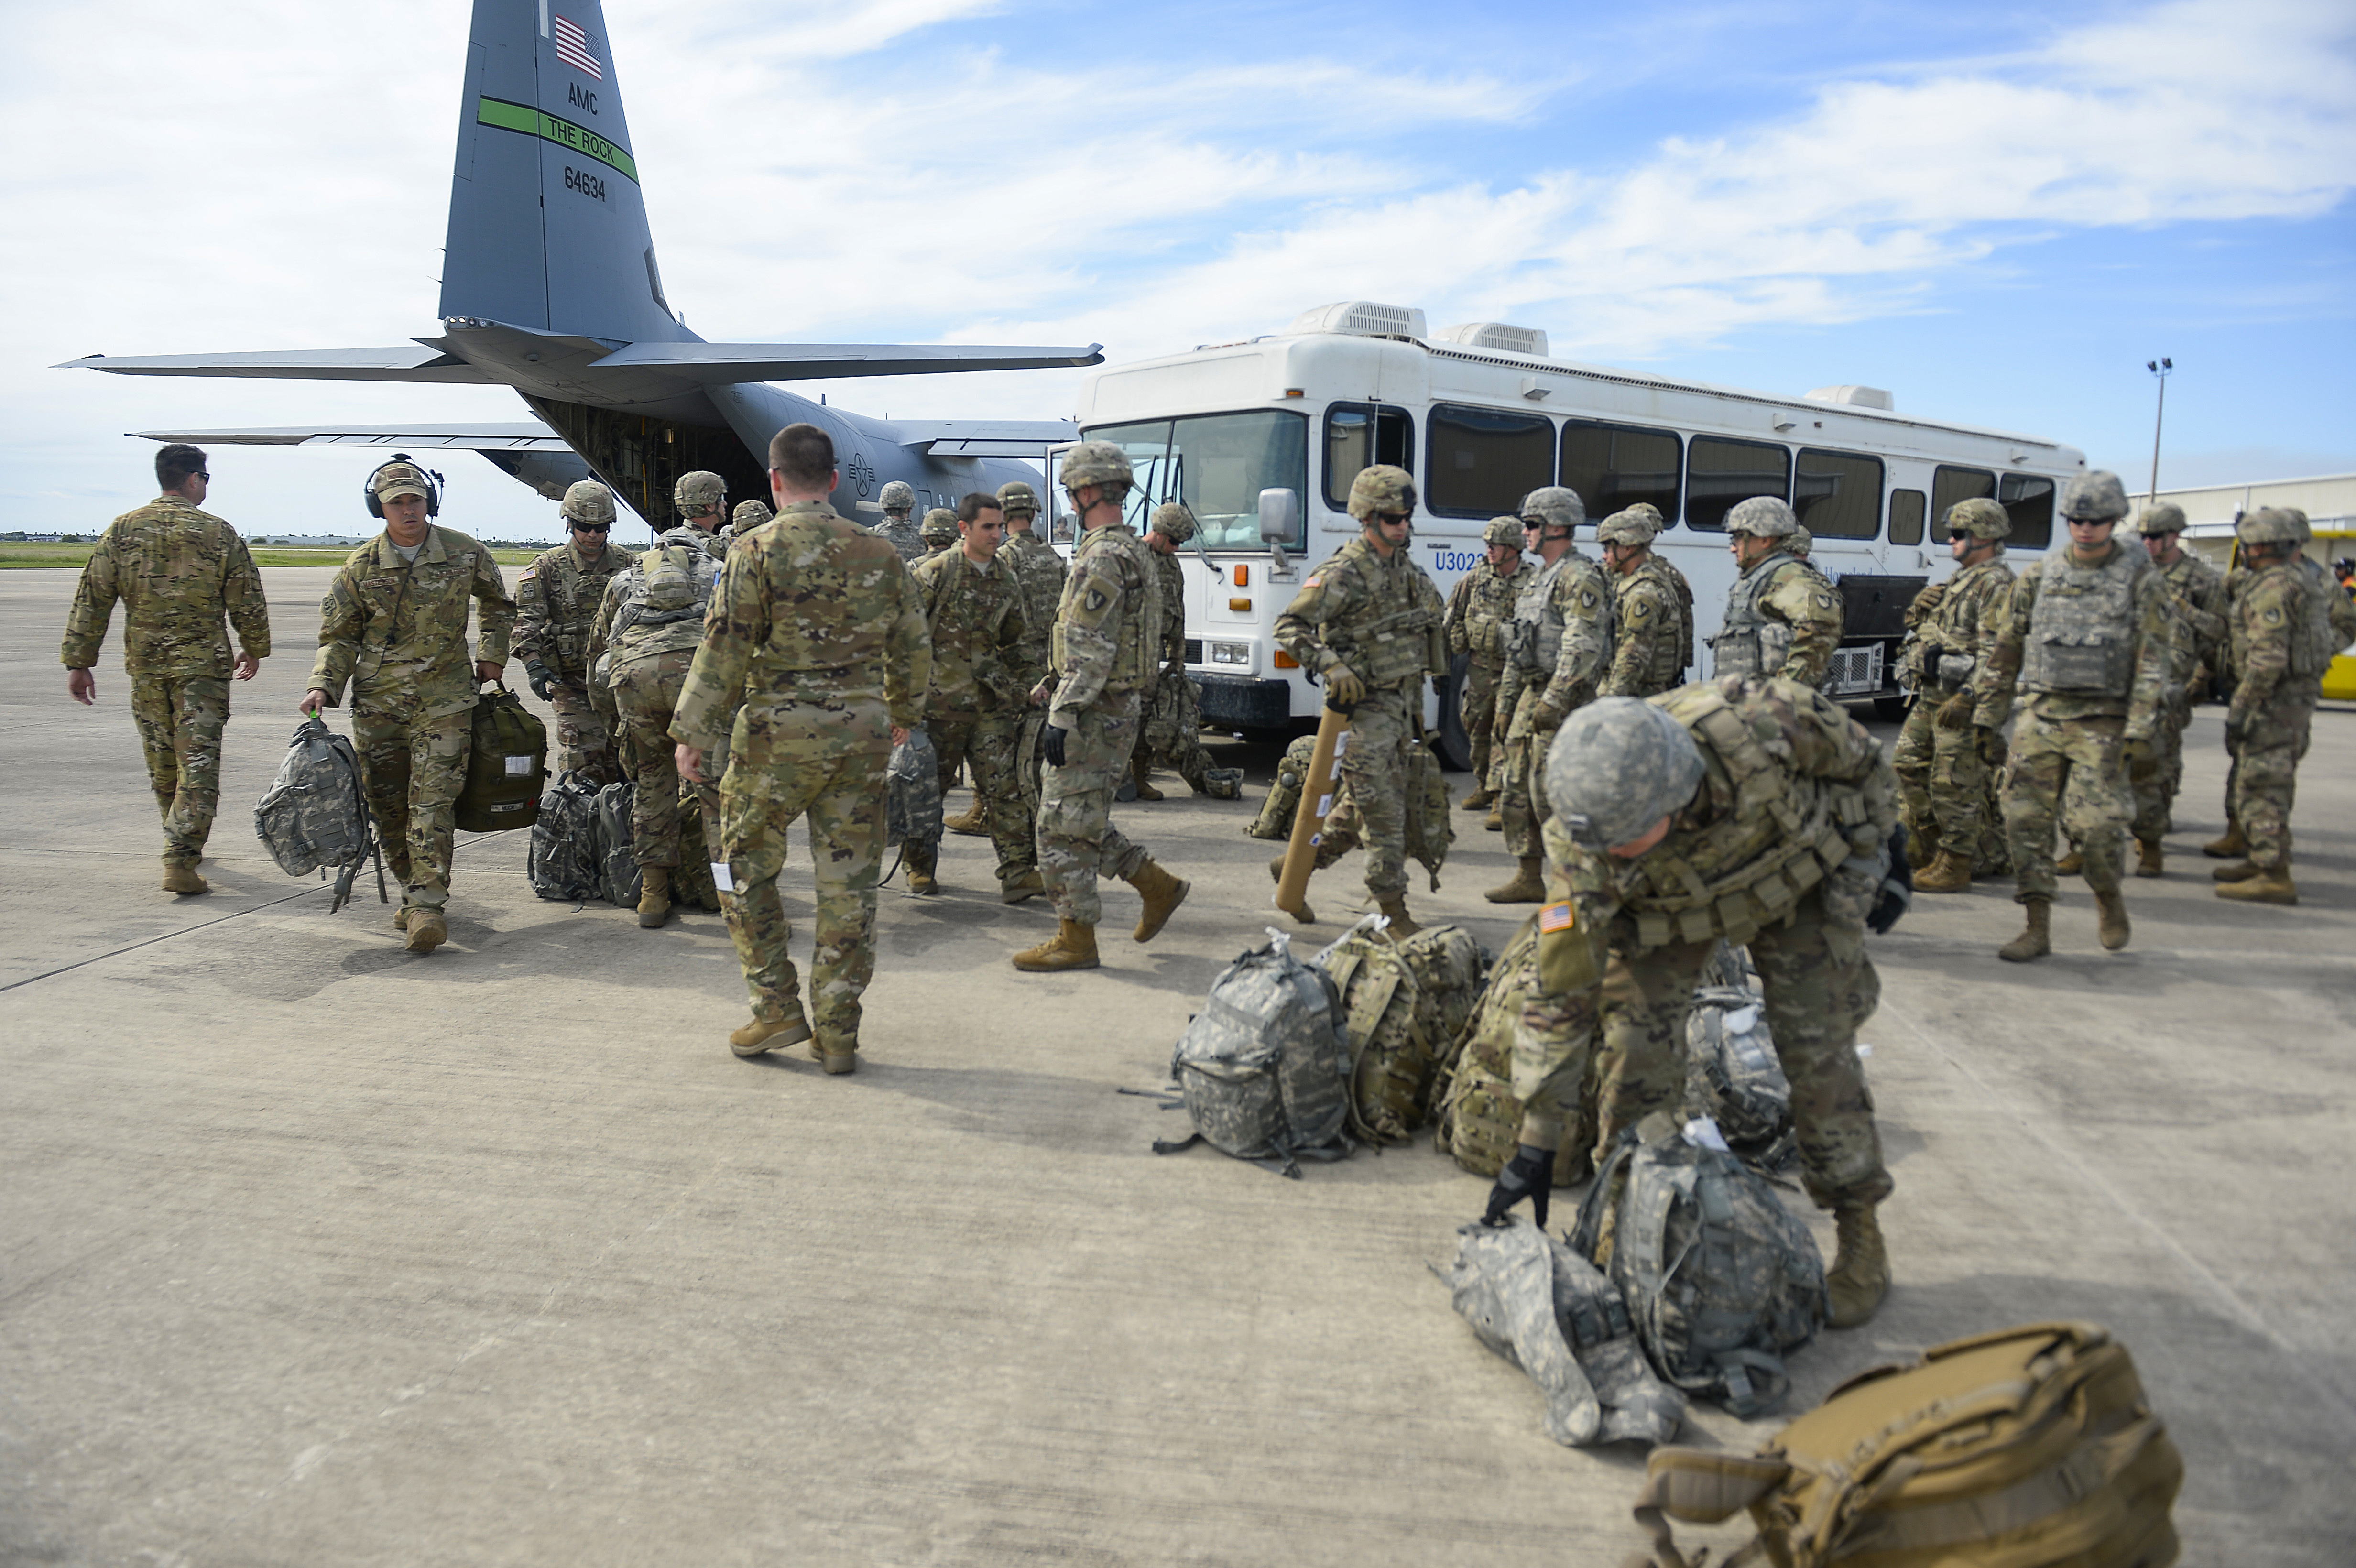 Security experts question border mission for military